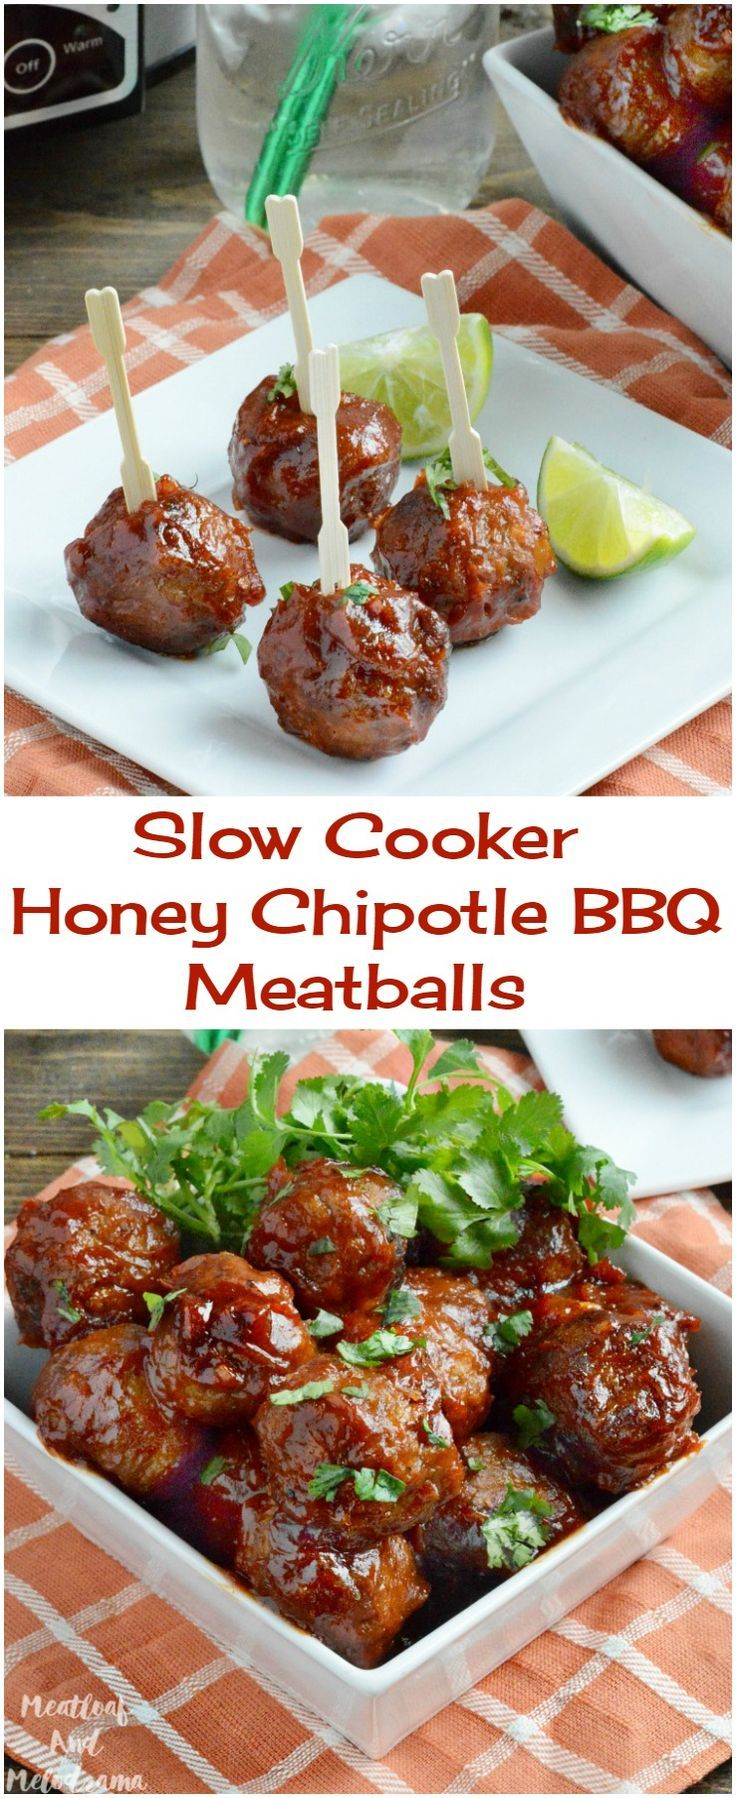 Slow Cooker Honey Chipotle BBQ Meatballs -  an easy sweet and spicy appetizer that's perfect for the big game or any day. Let your Crock-Pot do the work! ad #VivaLaMorena